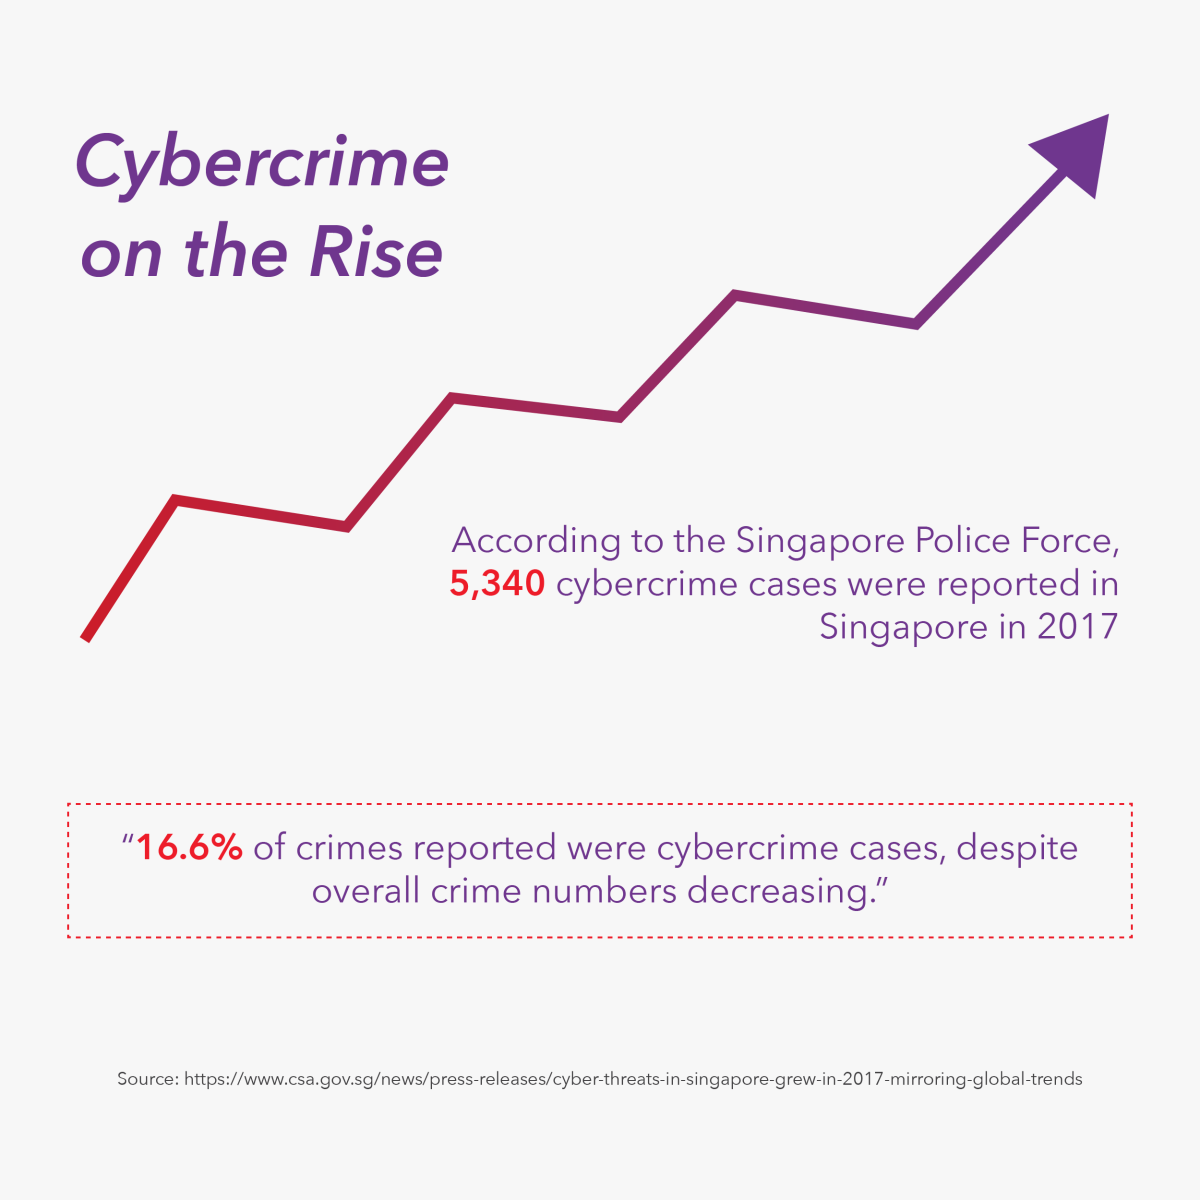 Cybercrime on the rise